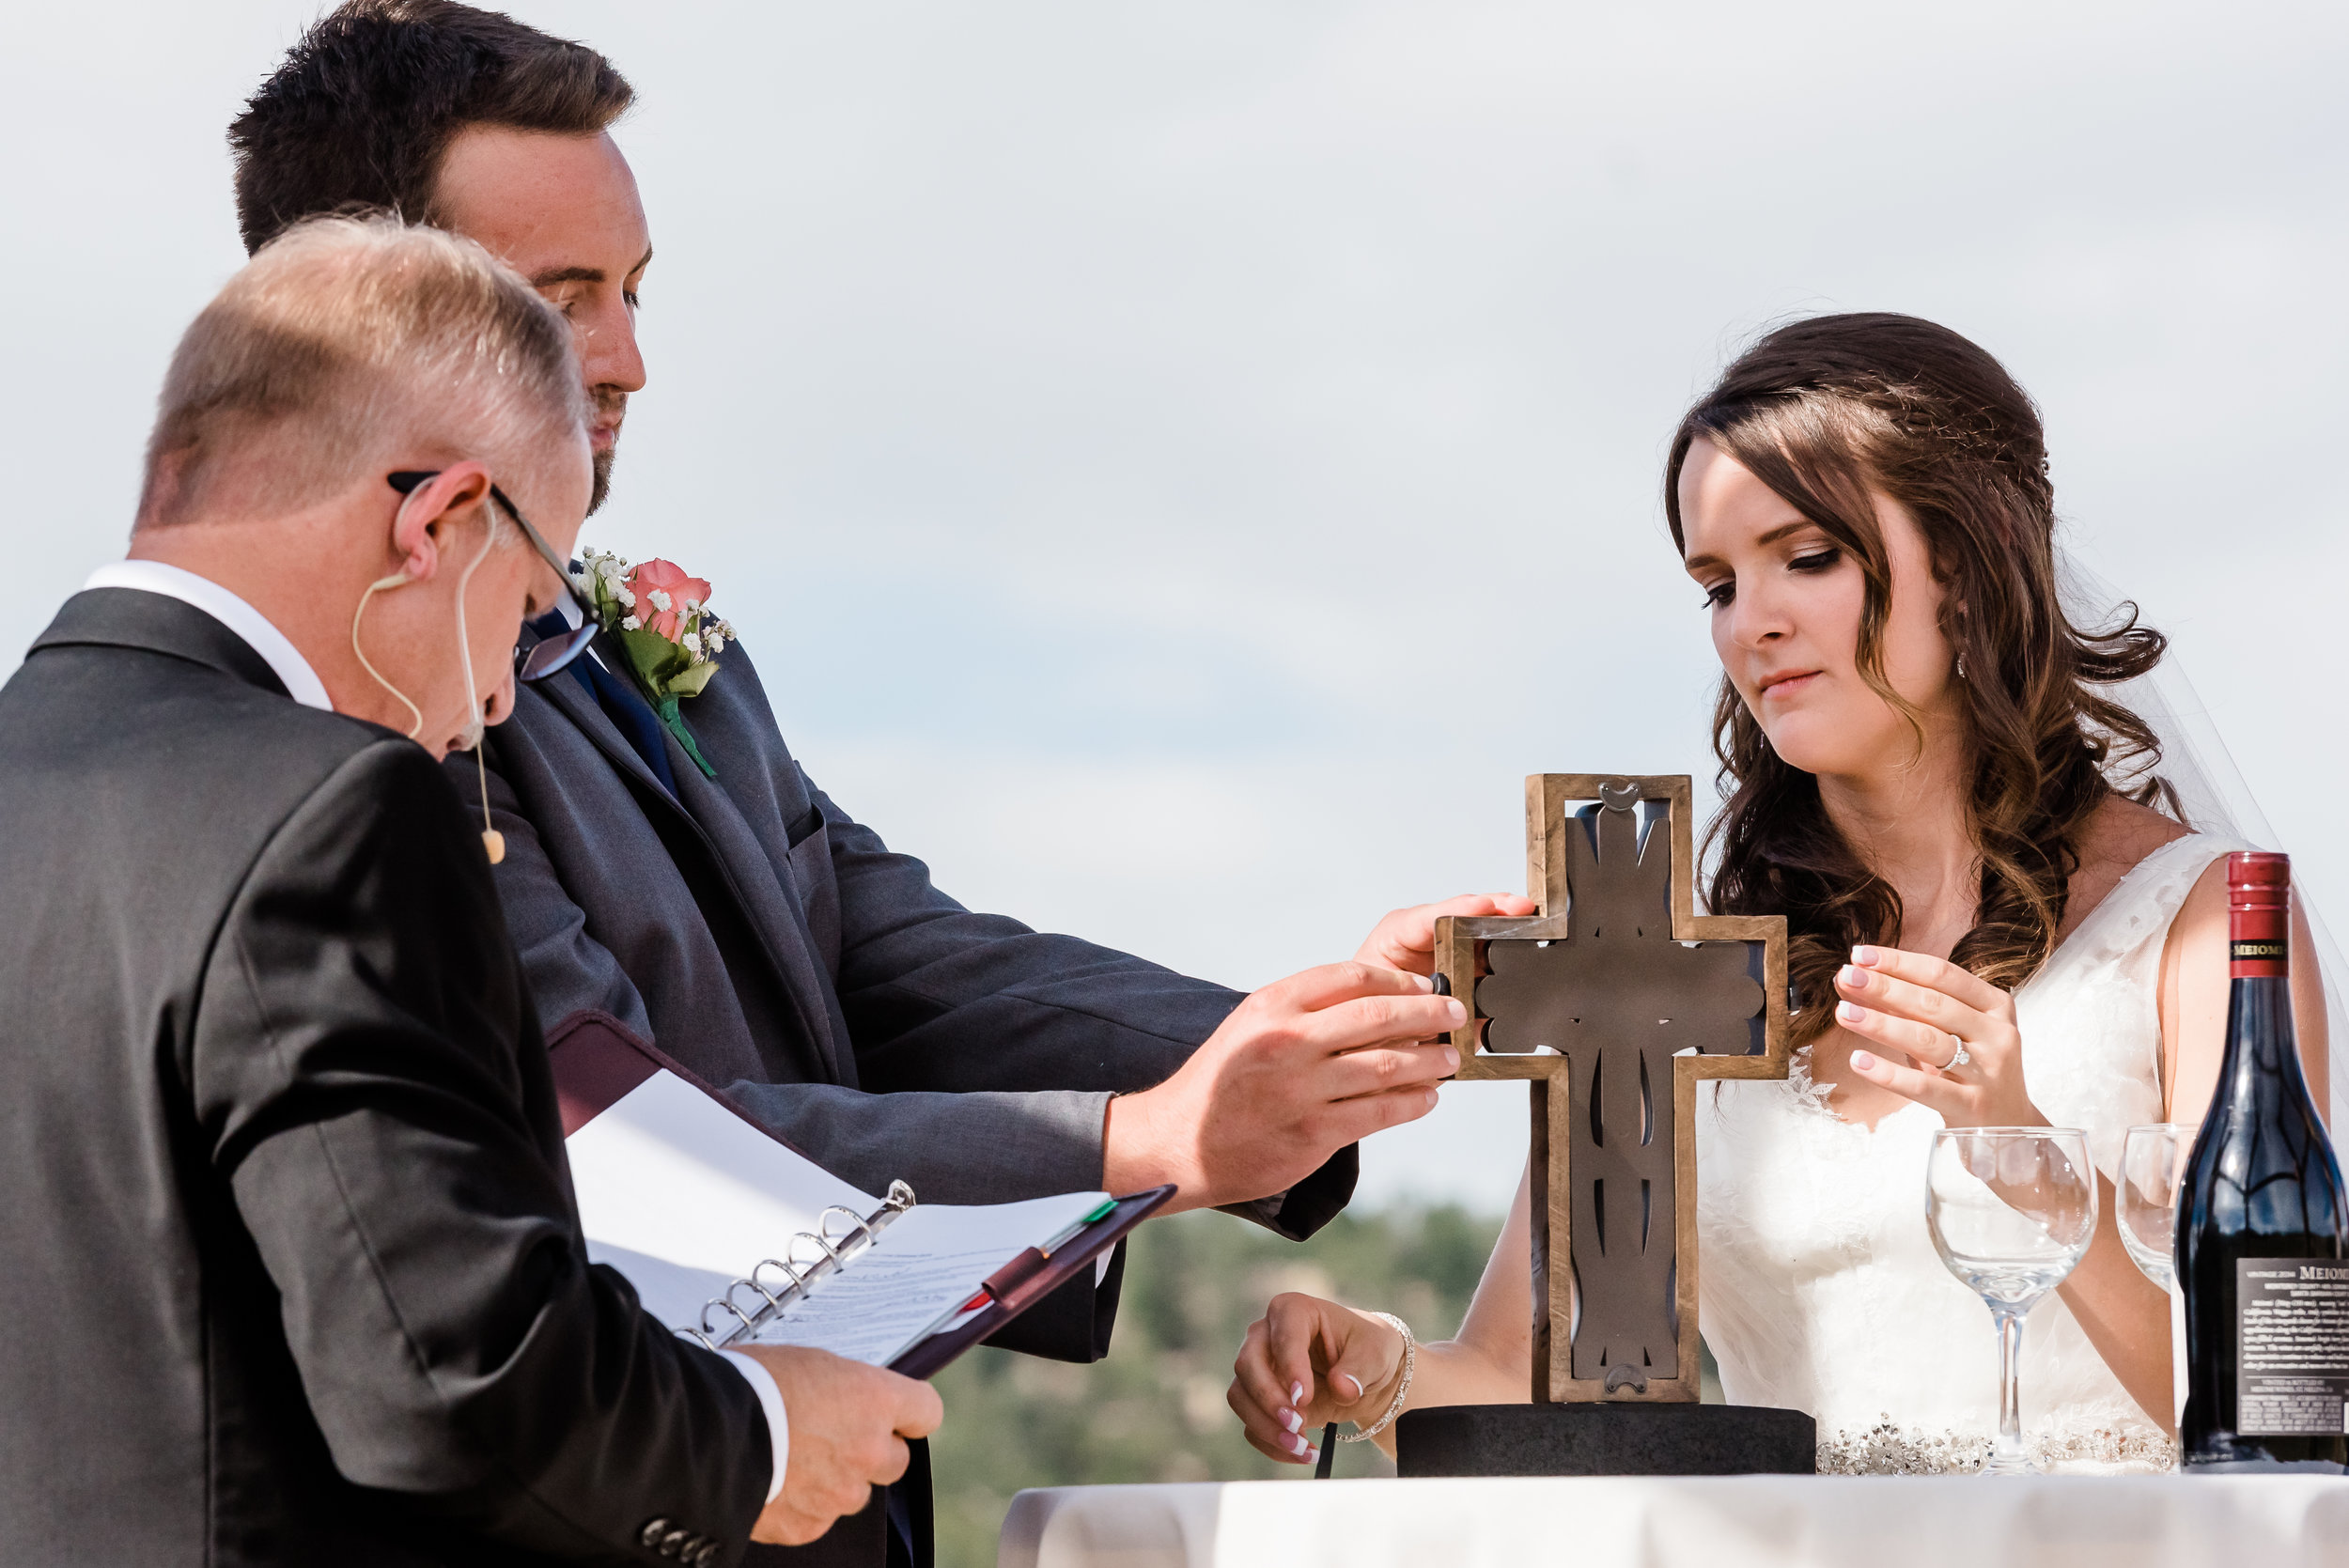 24 Wedding Unity Ceremony Ideas For Your Traditional Or Non